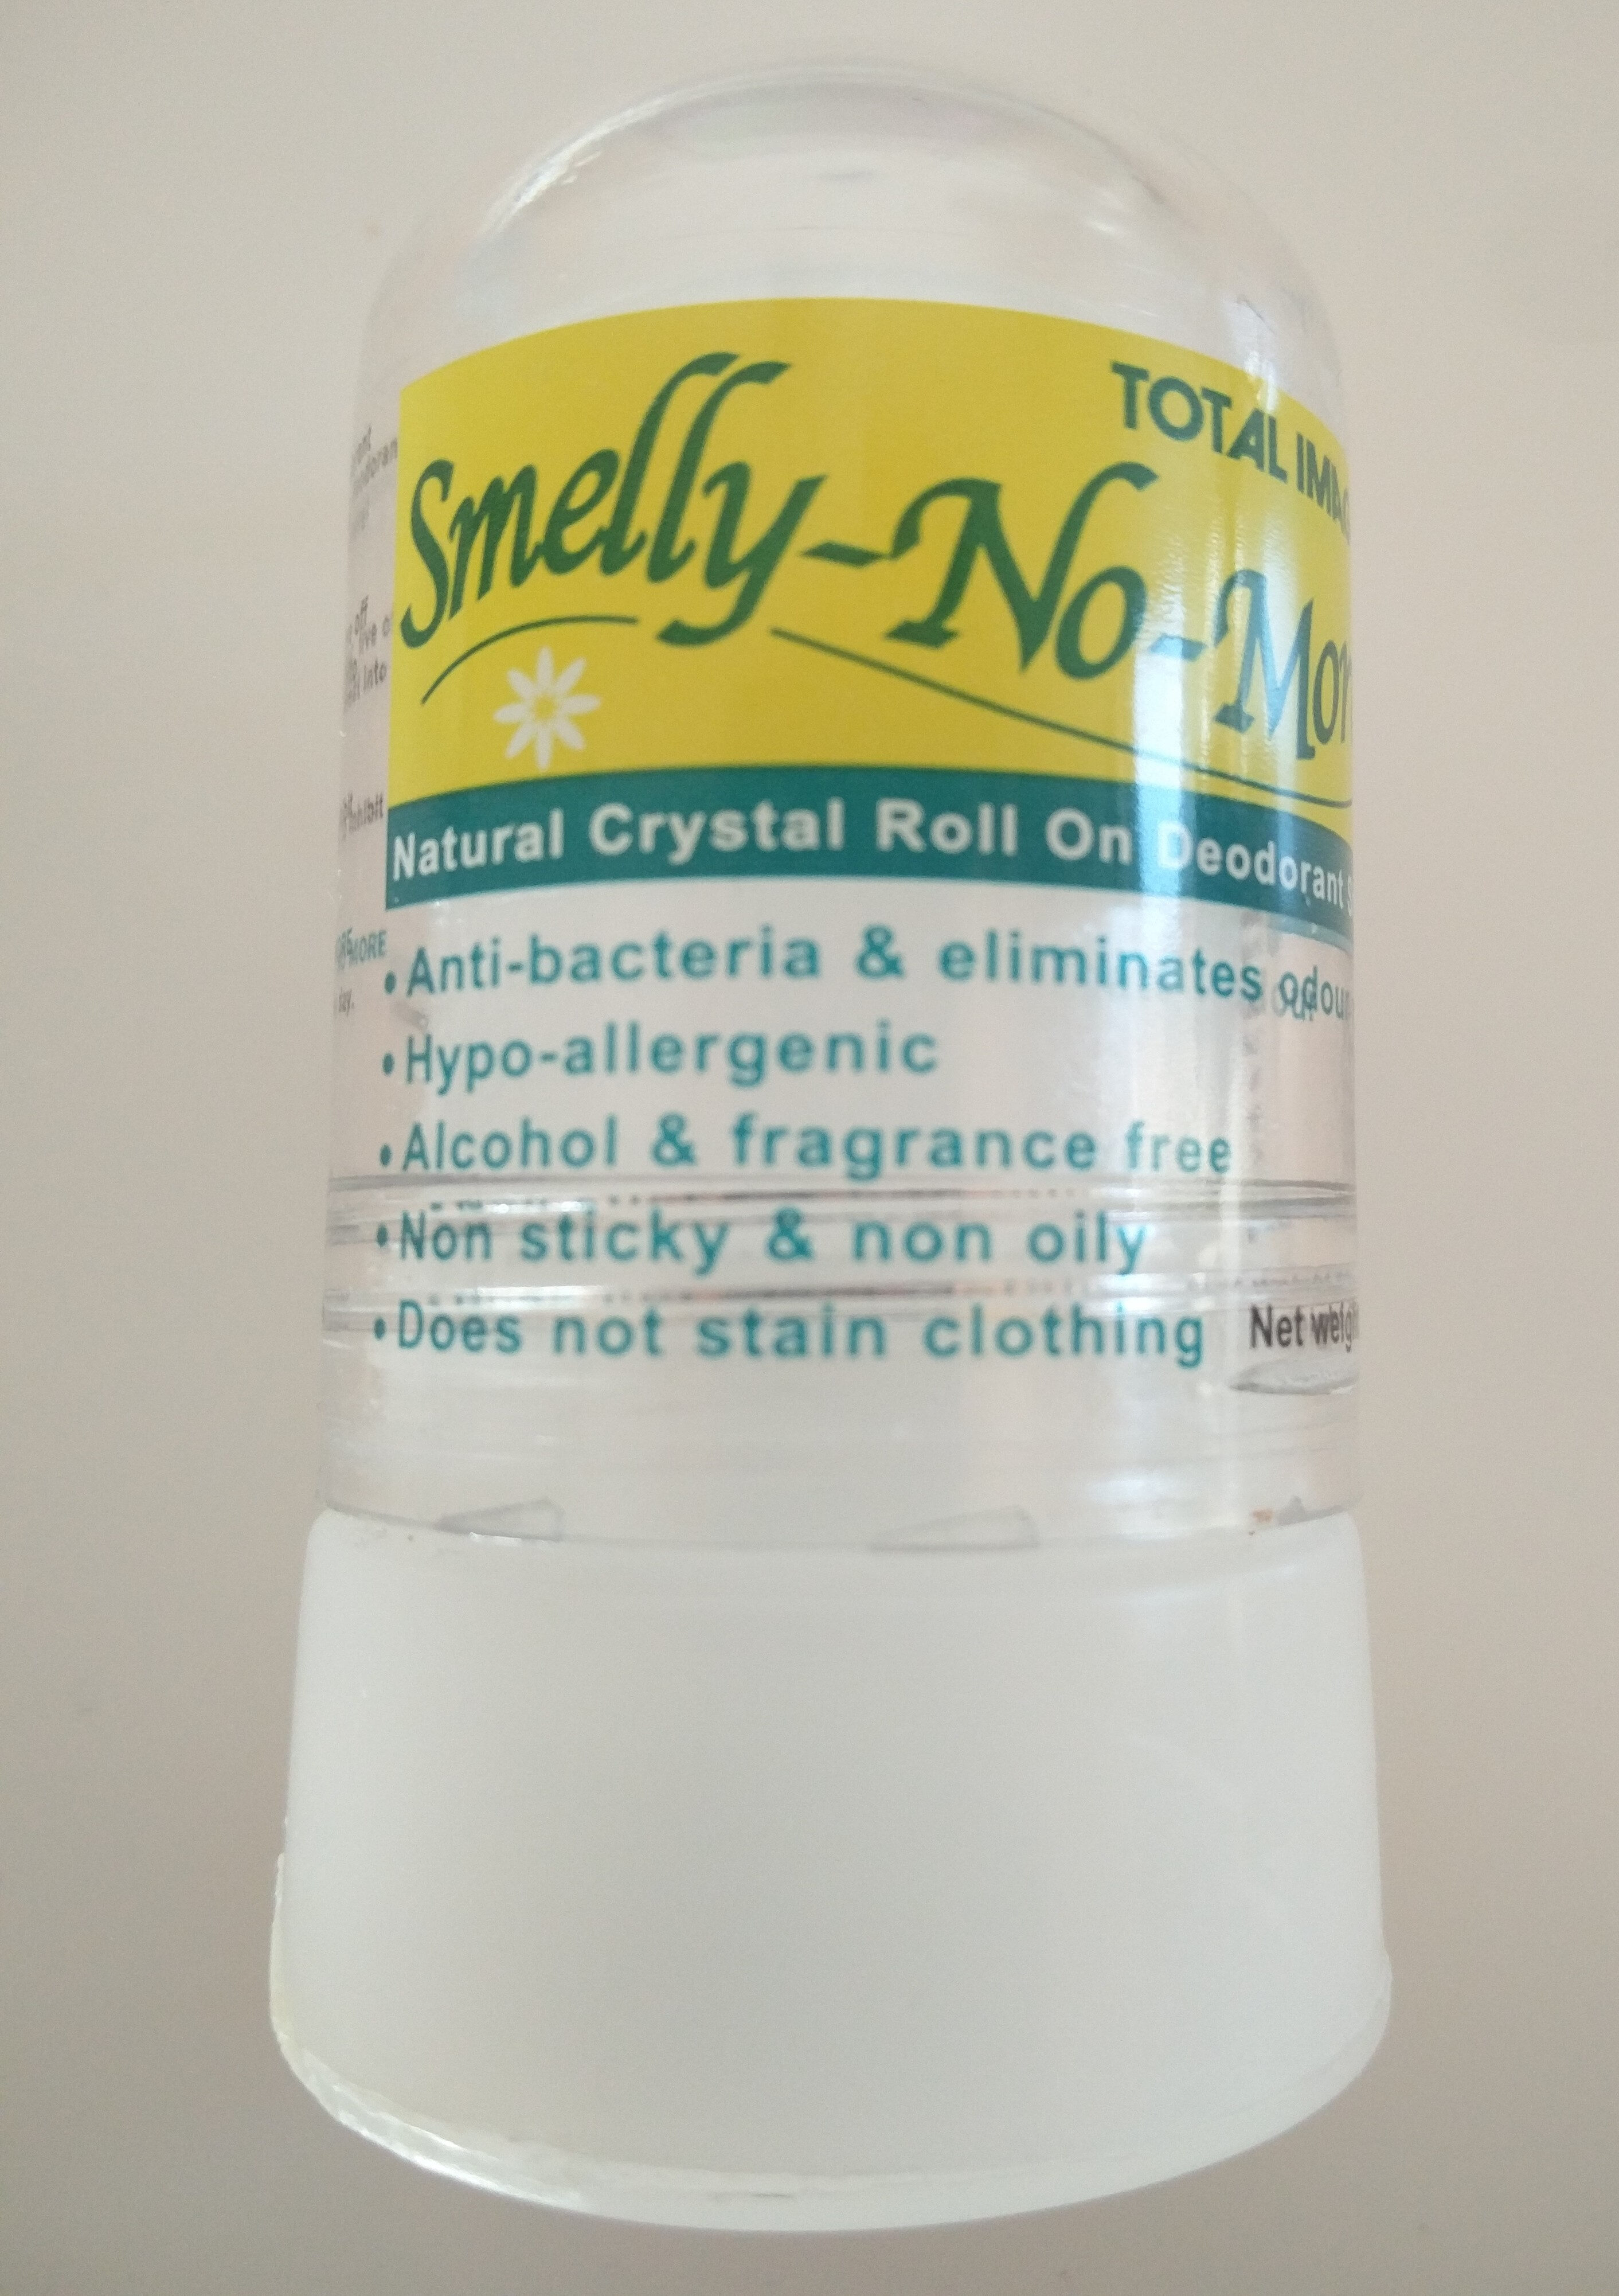 Smelly-No-More - Product - en